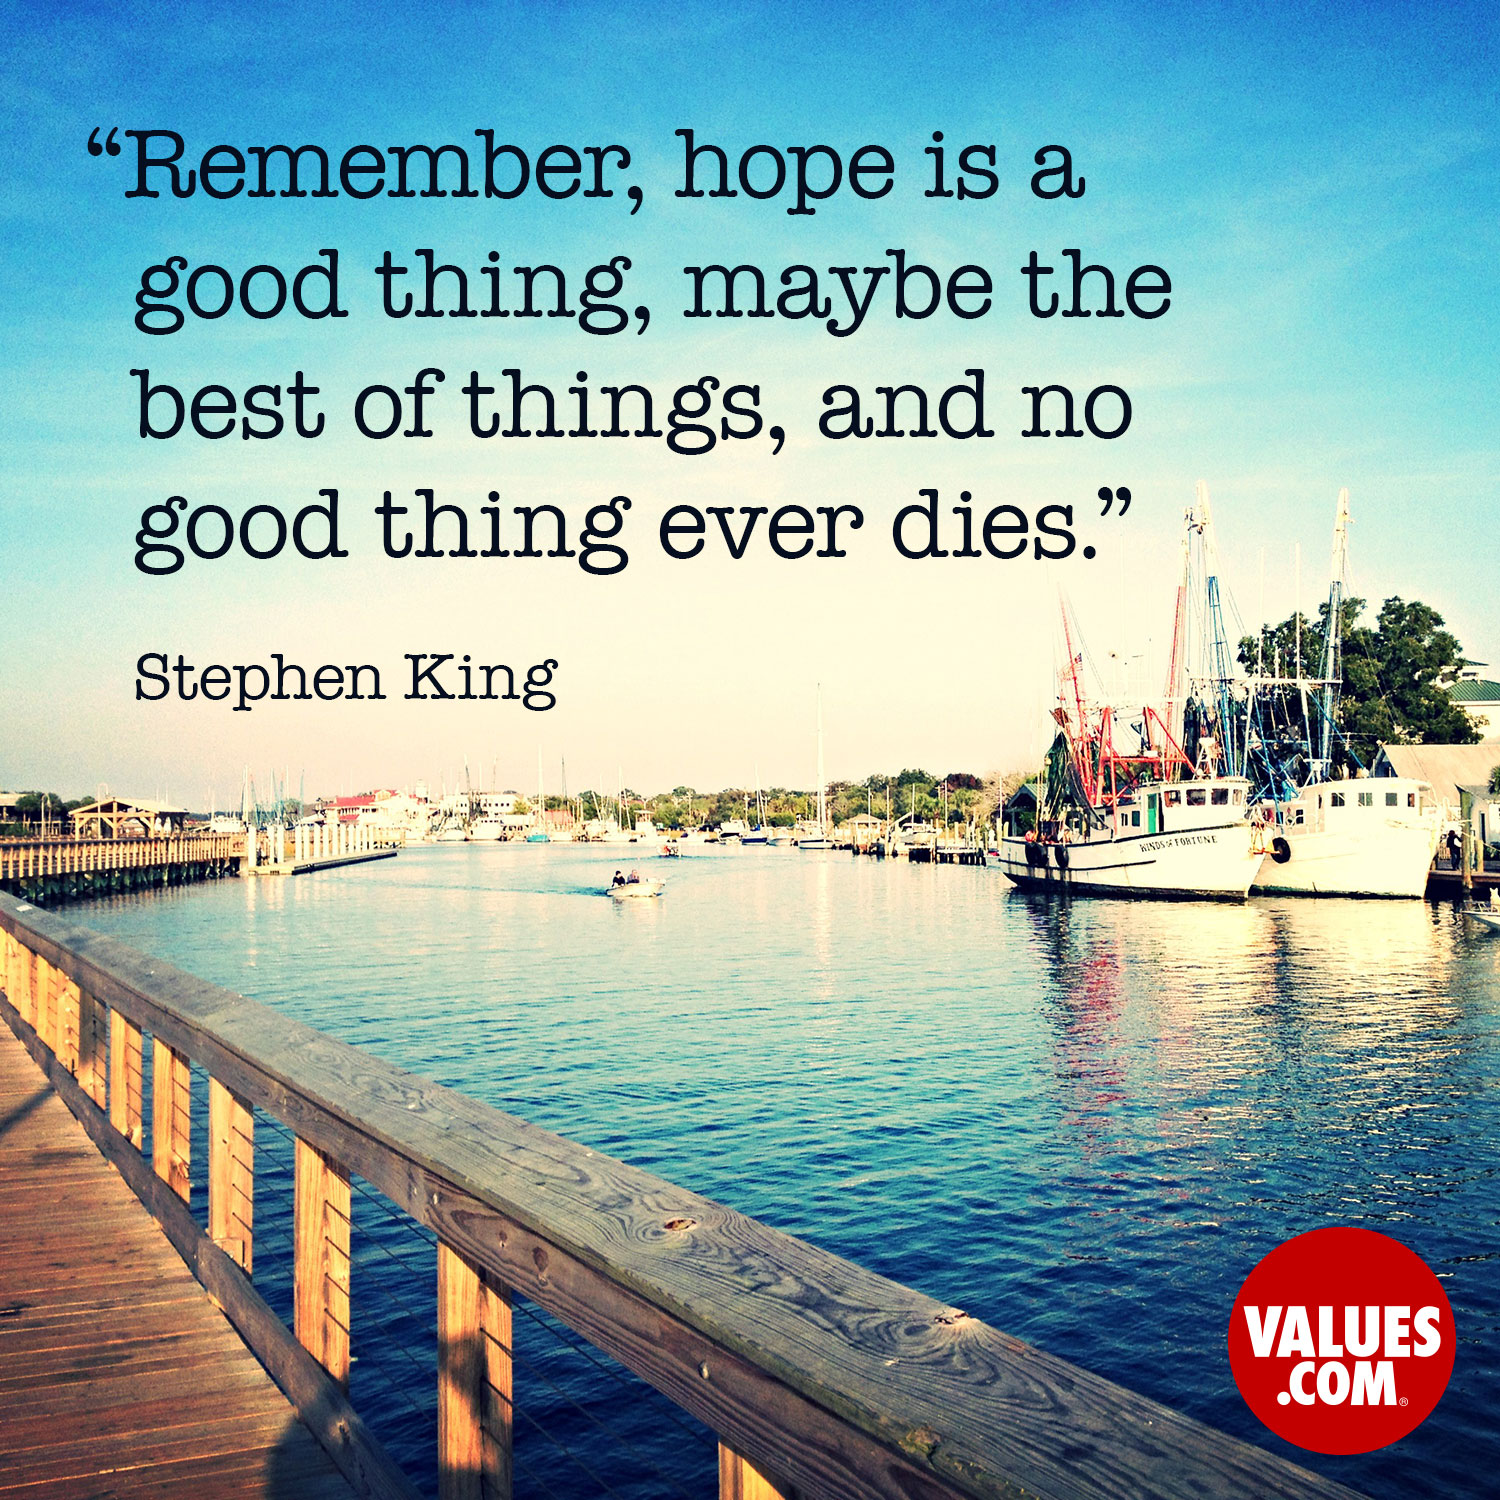 Remember, hope is a good thing, maybe the best of things, and no good thing ever dies. —Stephen King